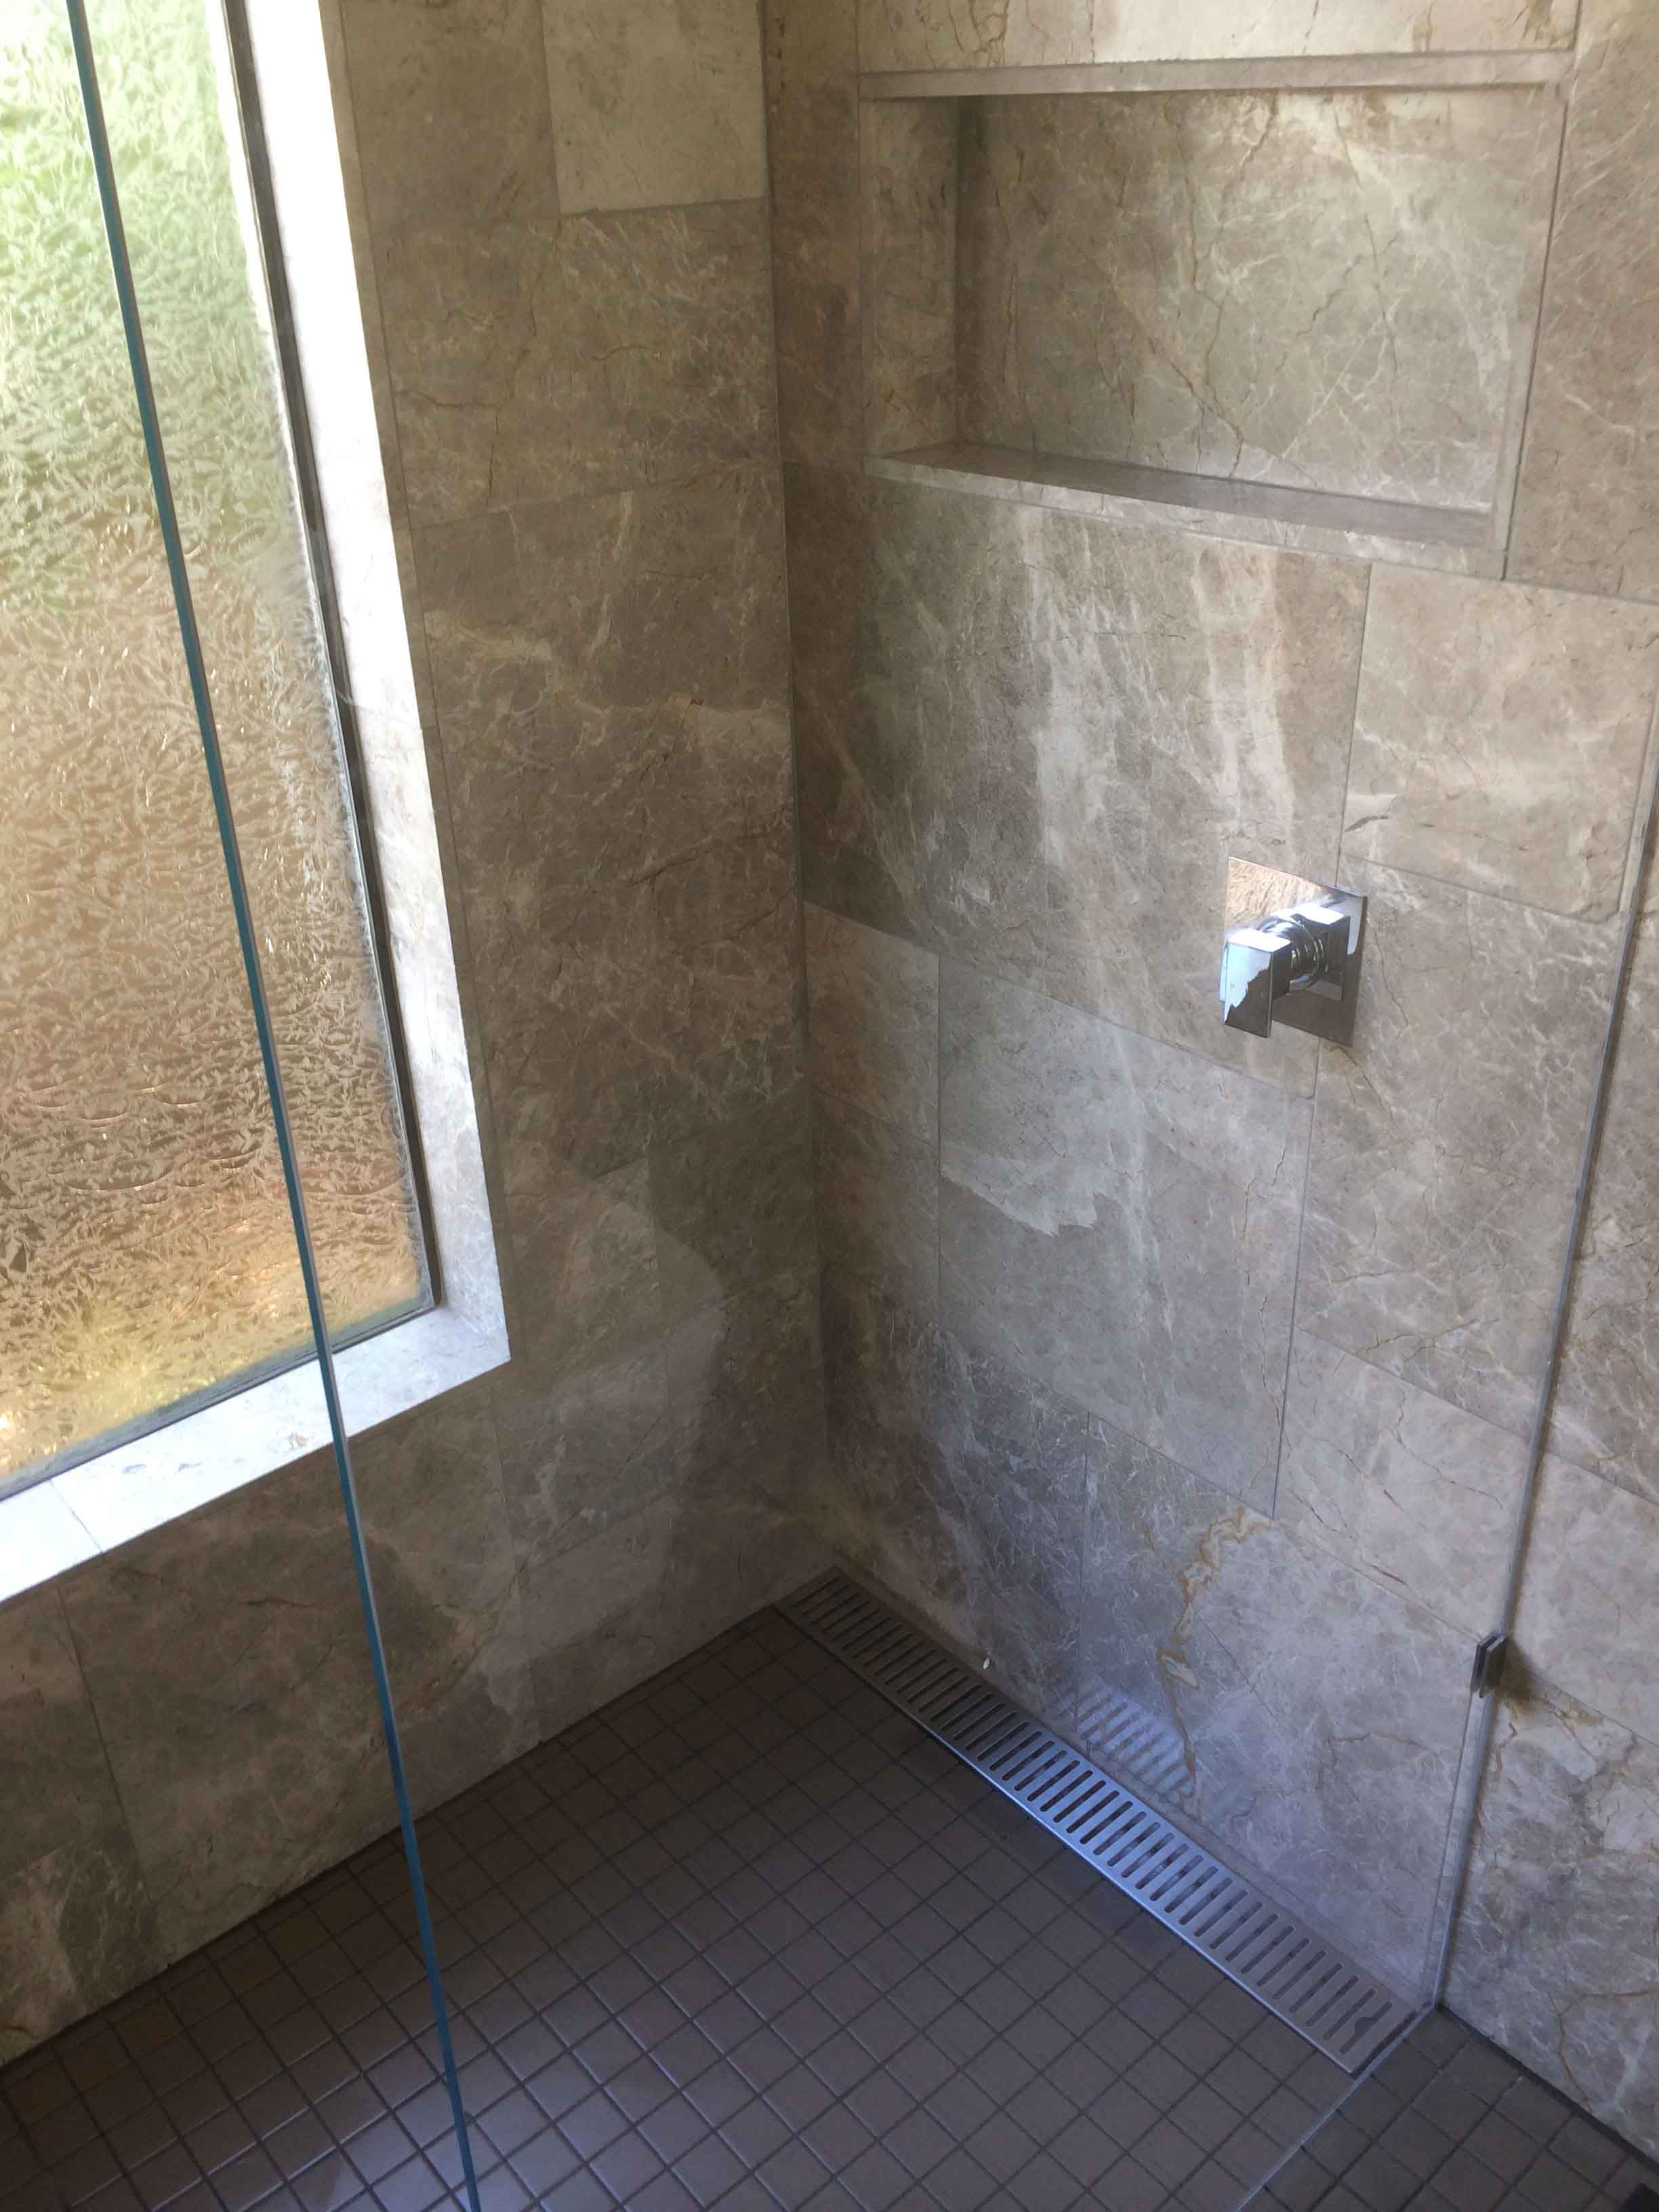 View of the  tiling done in the shower